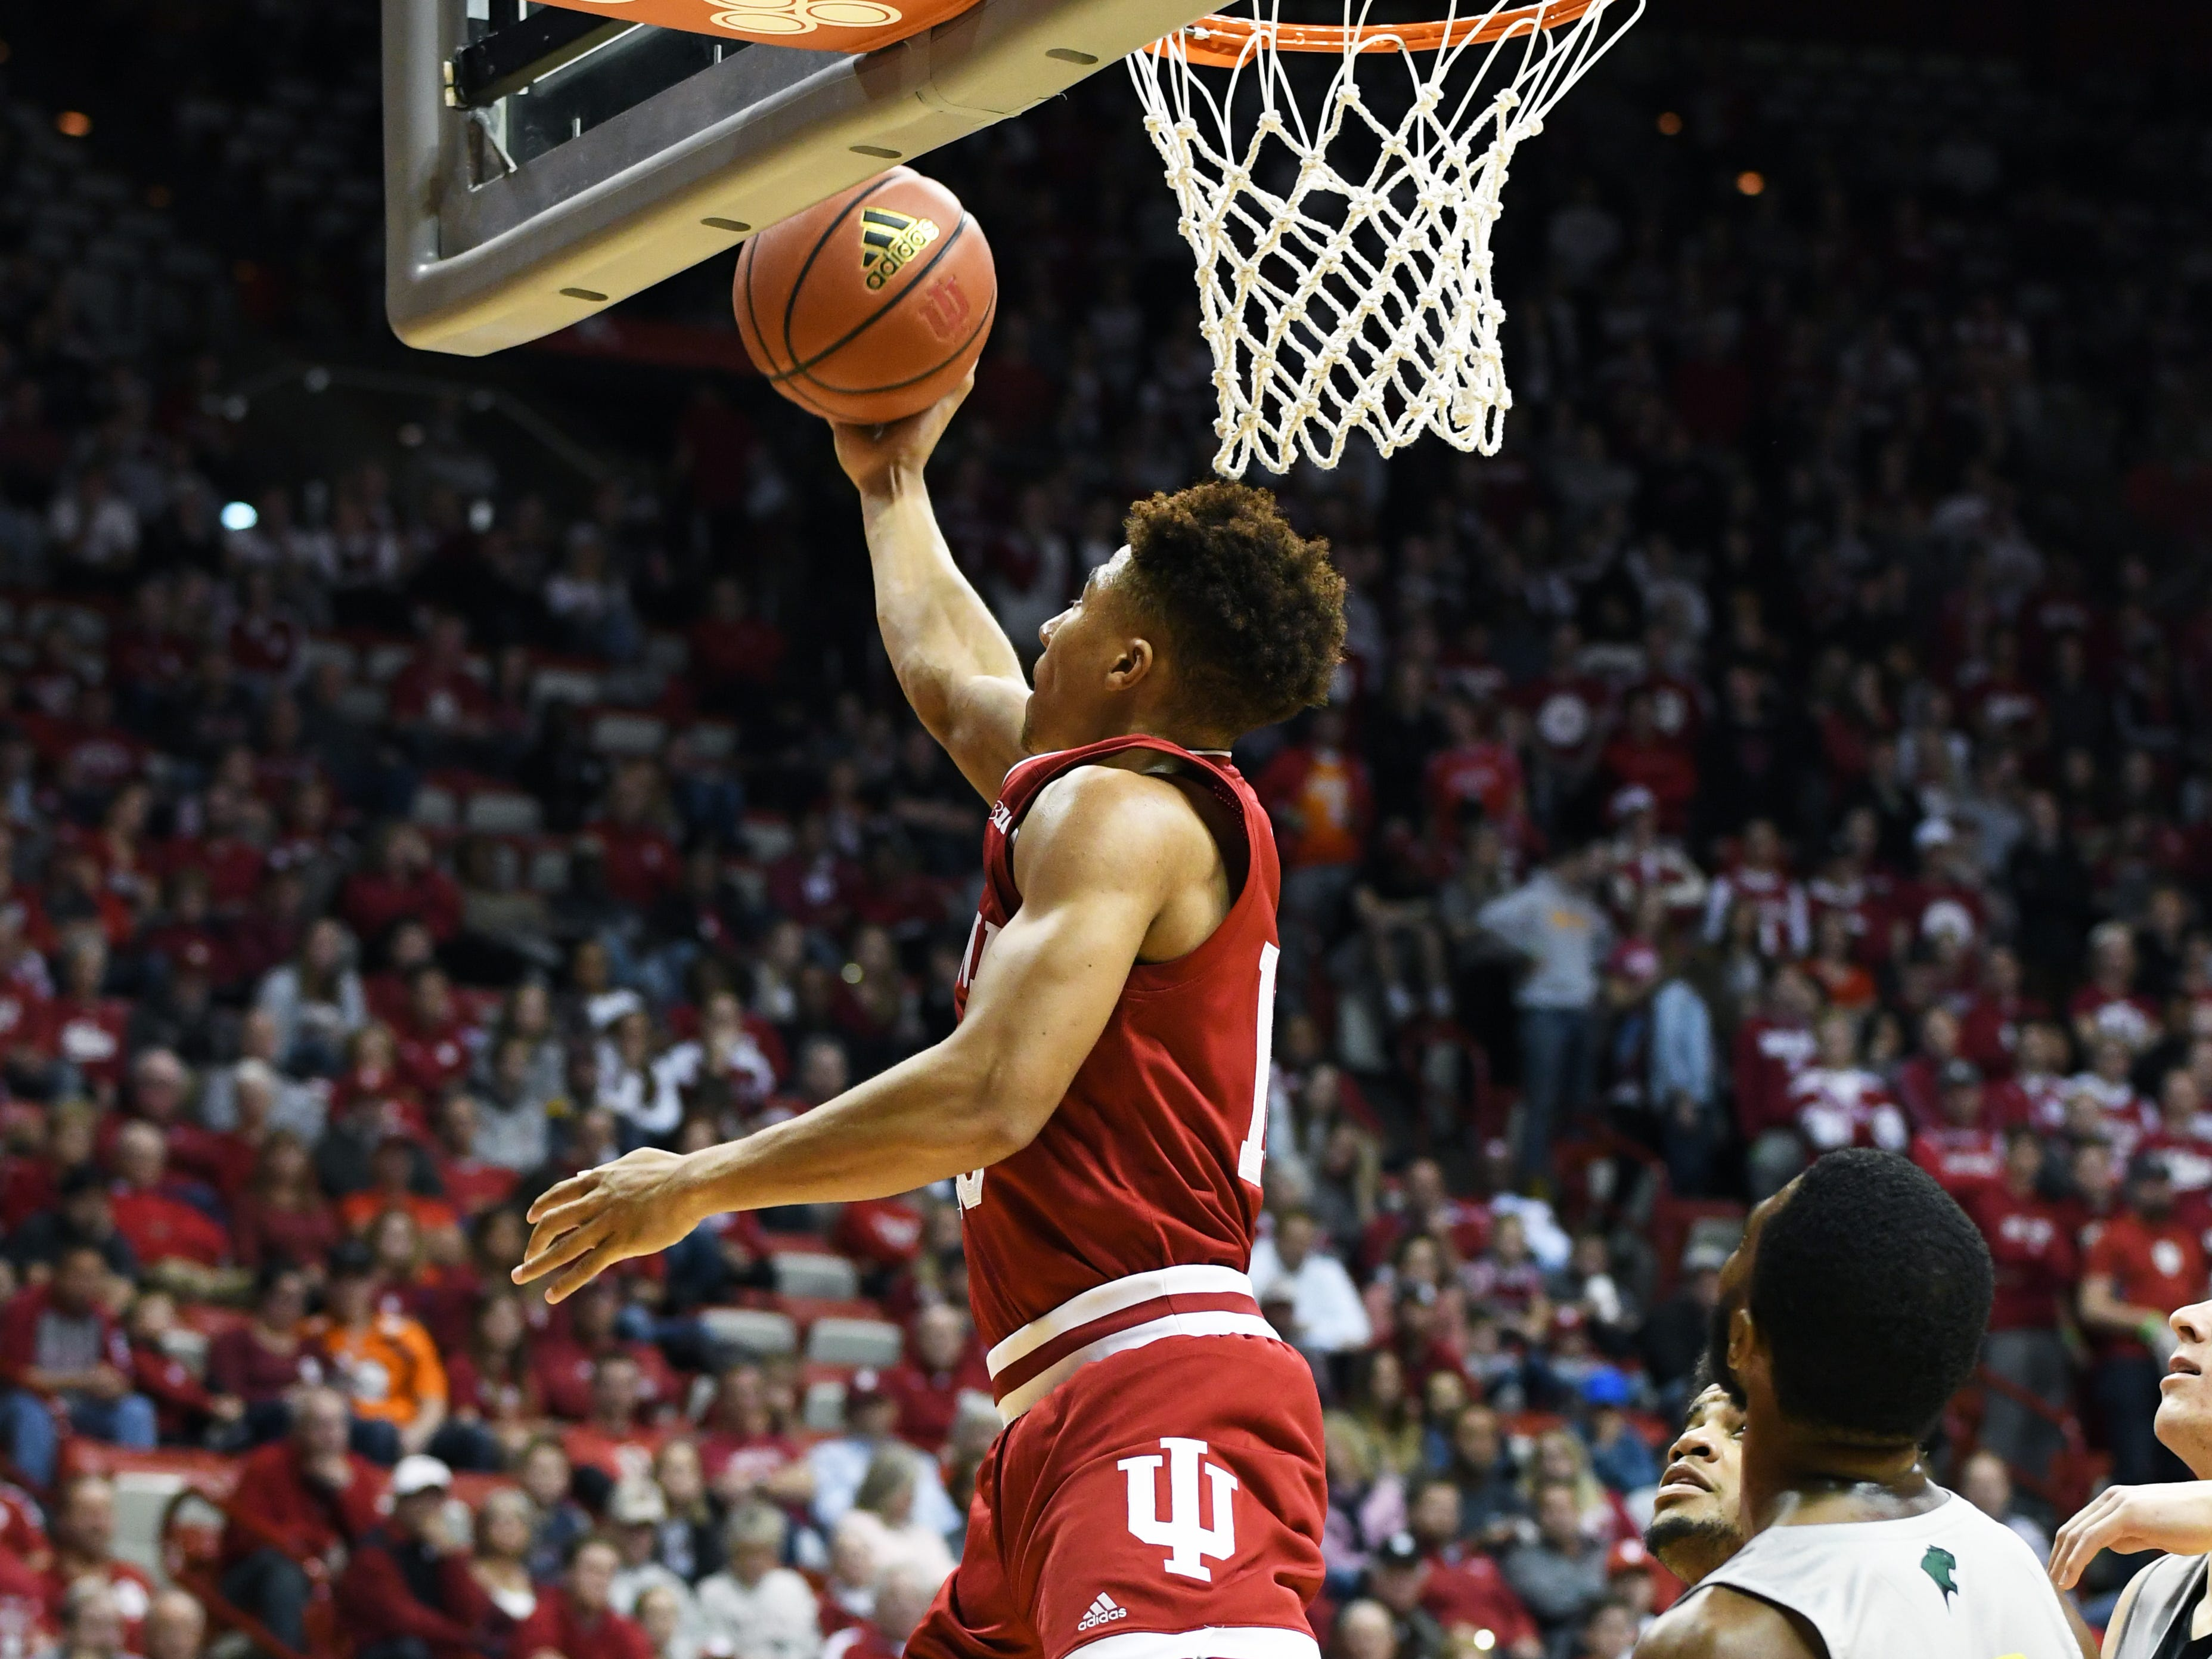 Indiana Hoosiers guard Rob Phinisee (10) goes to the basket during the game against Chicago State at Simon Skjodt Assembly Hall in Bloomington, Ind., on Tuesday, Nov. 6, 2018.